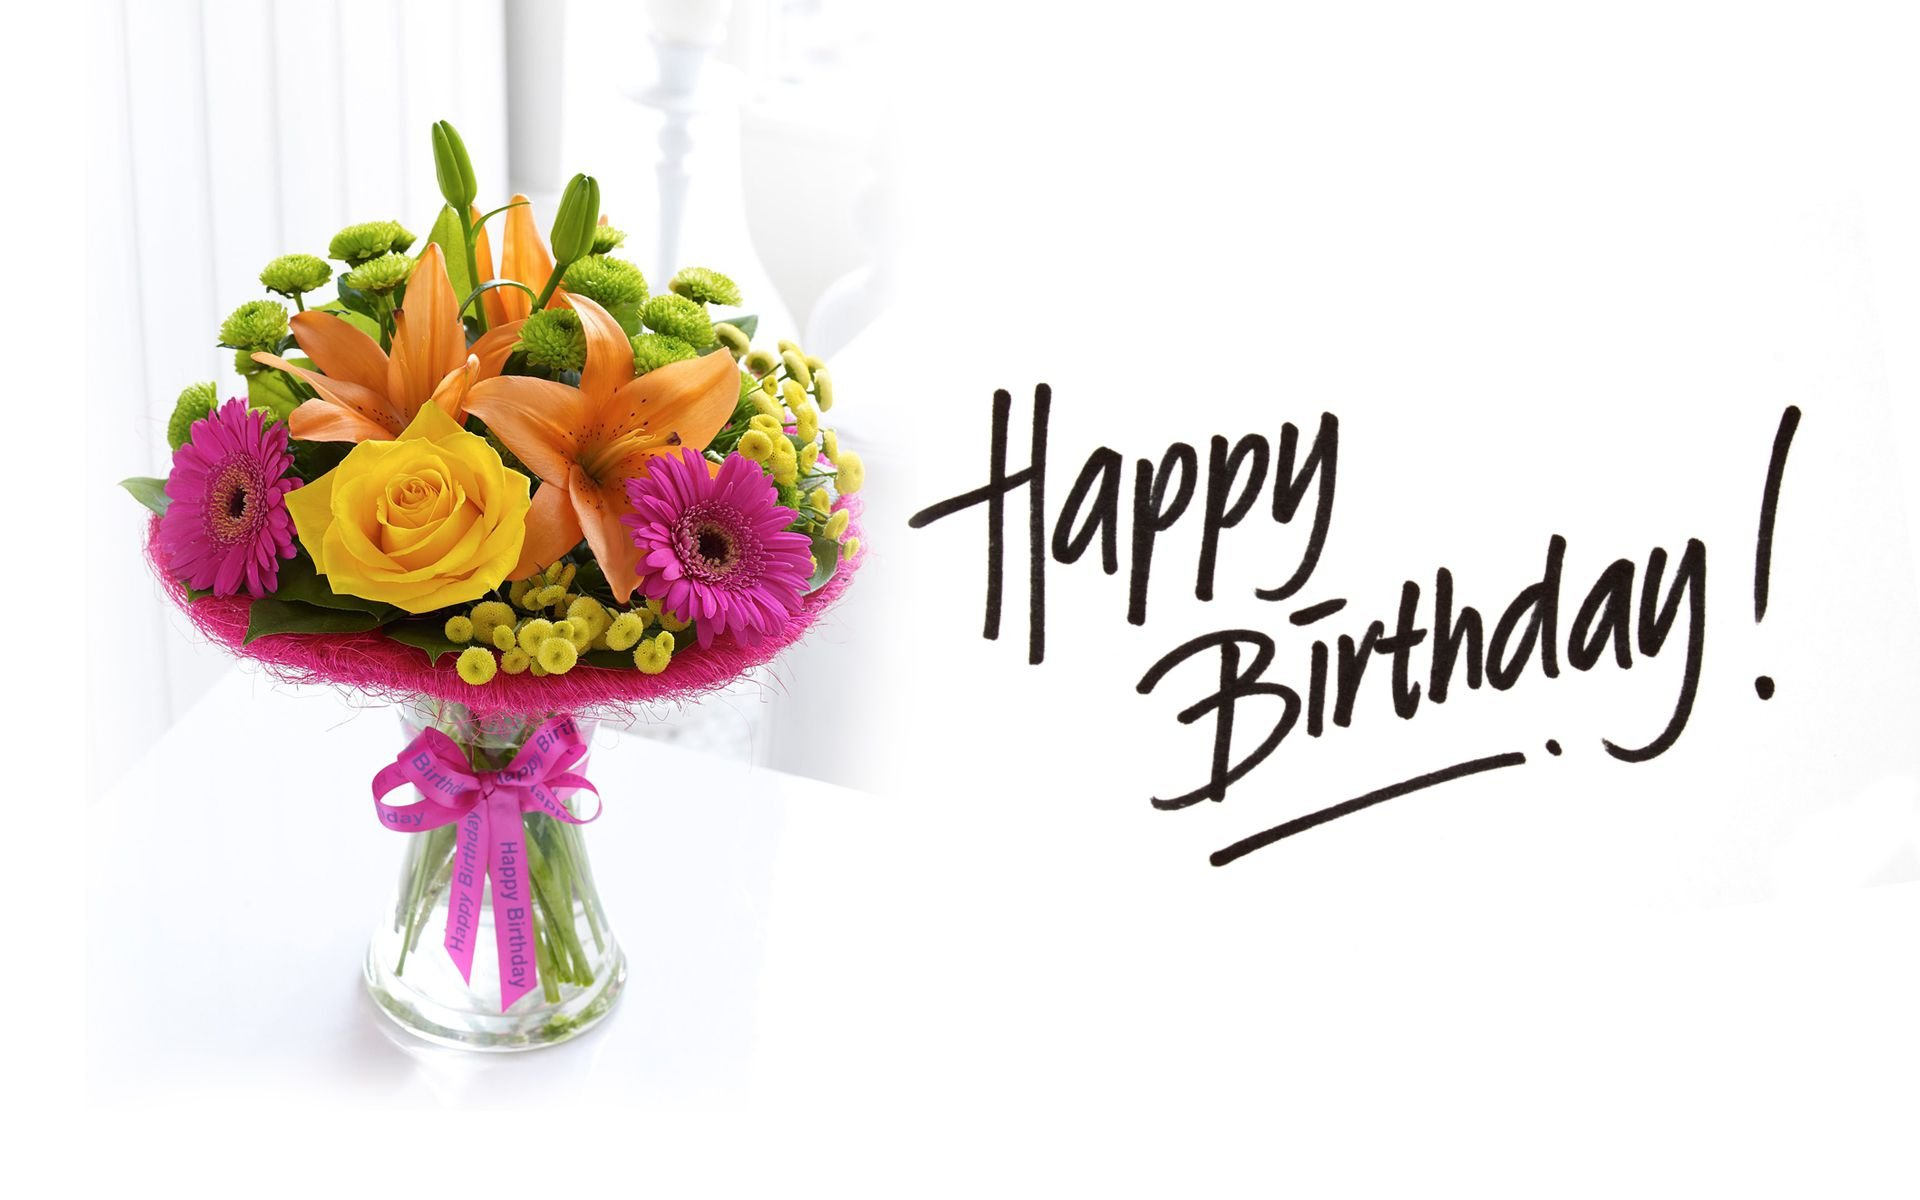 Happy birthday flowers for her same day flower delivery by httptropicaltanningfowp contentuploads201703modern style happy birthday flowers with happy birthday flowers pictures and roses wall 11167 izmirmasajfo